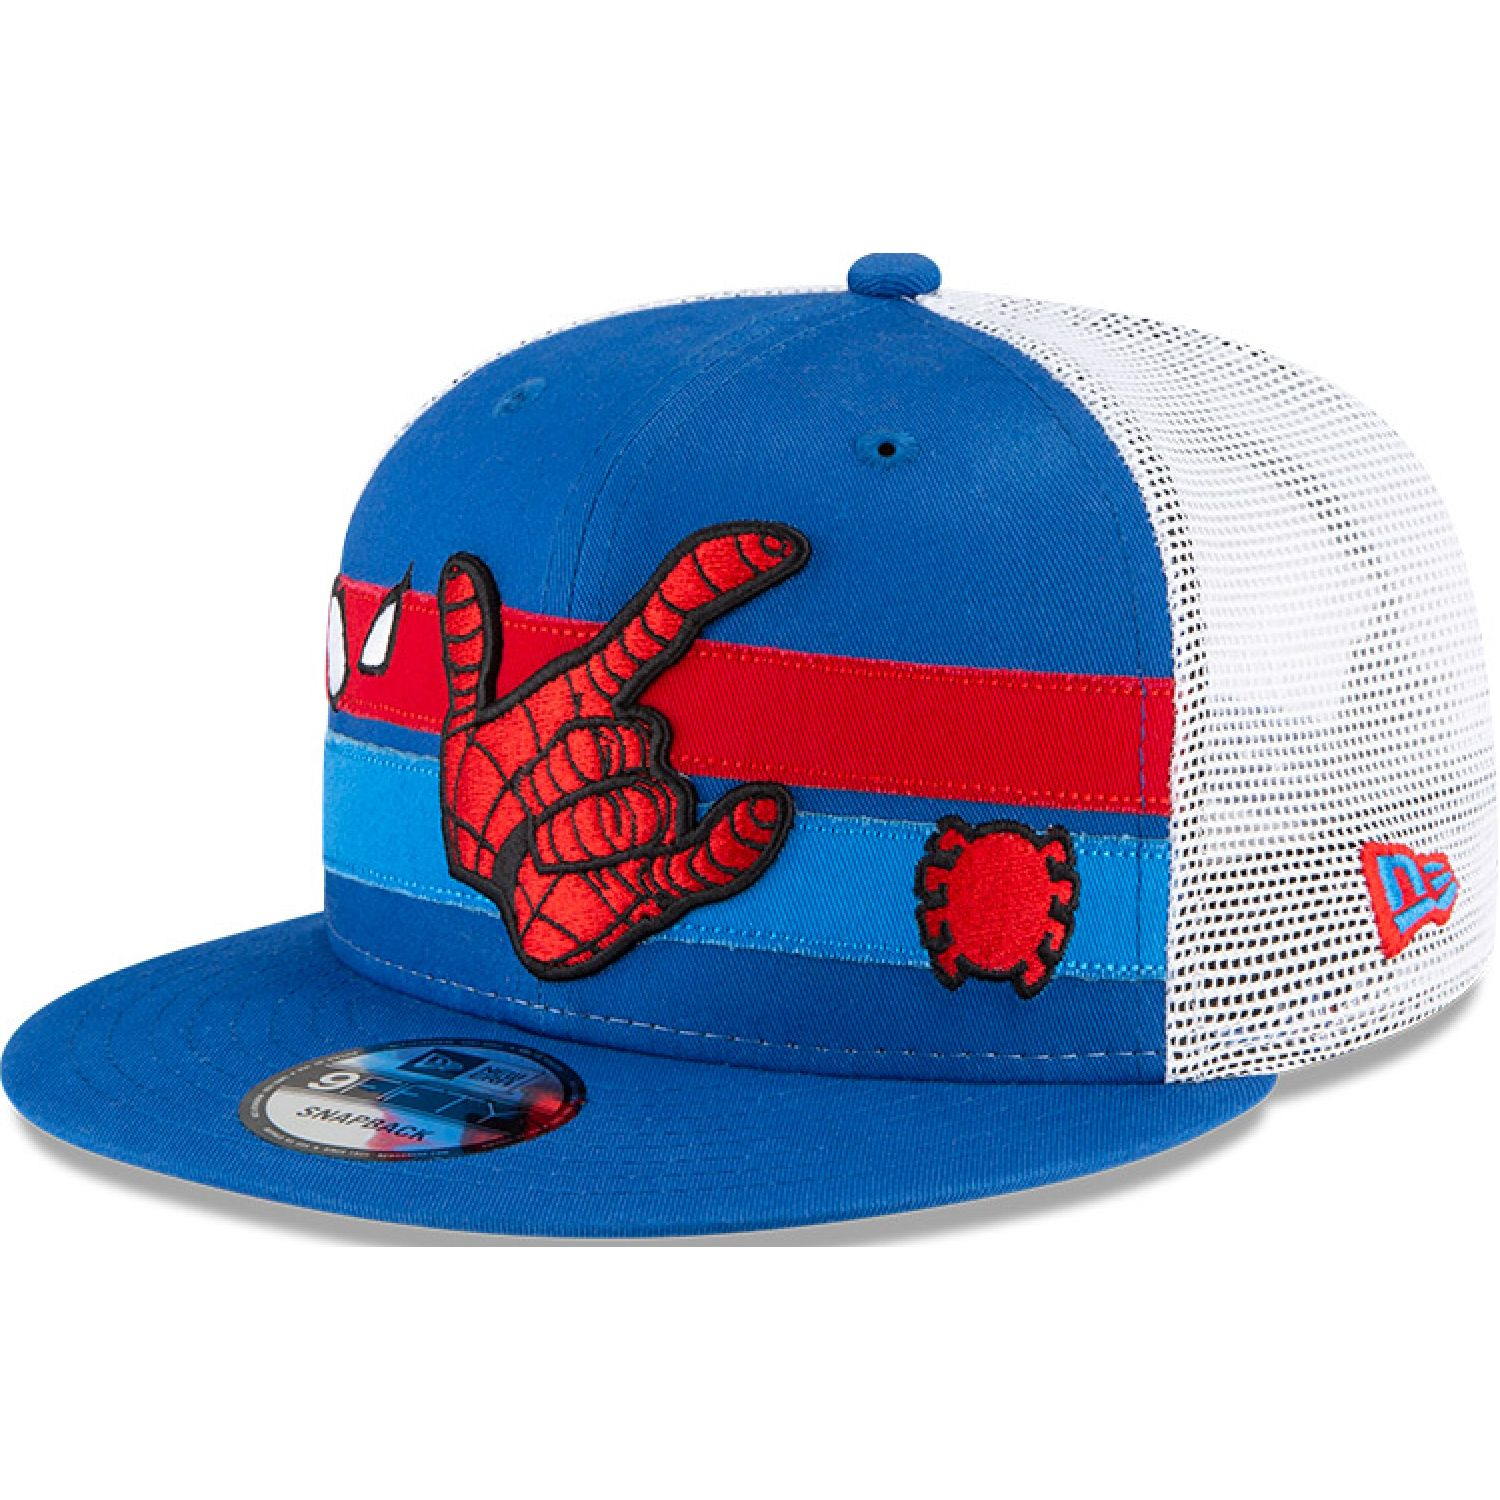 NEW ERA M950 Trucker Strpe B1 Spiderman Bluazu MED BLUE Gorras de béisbol